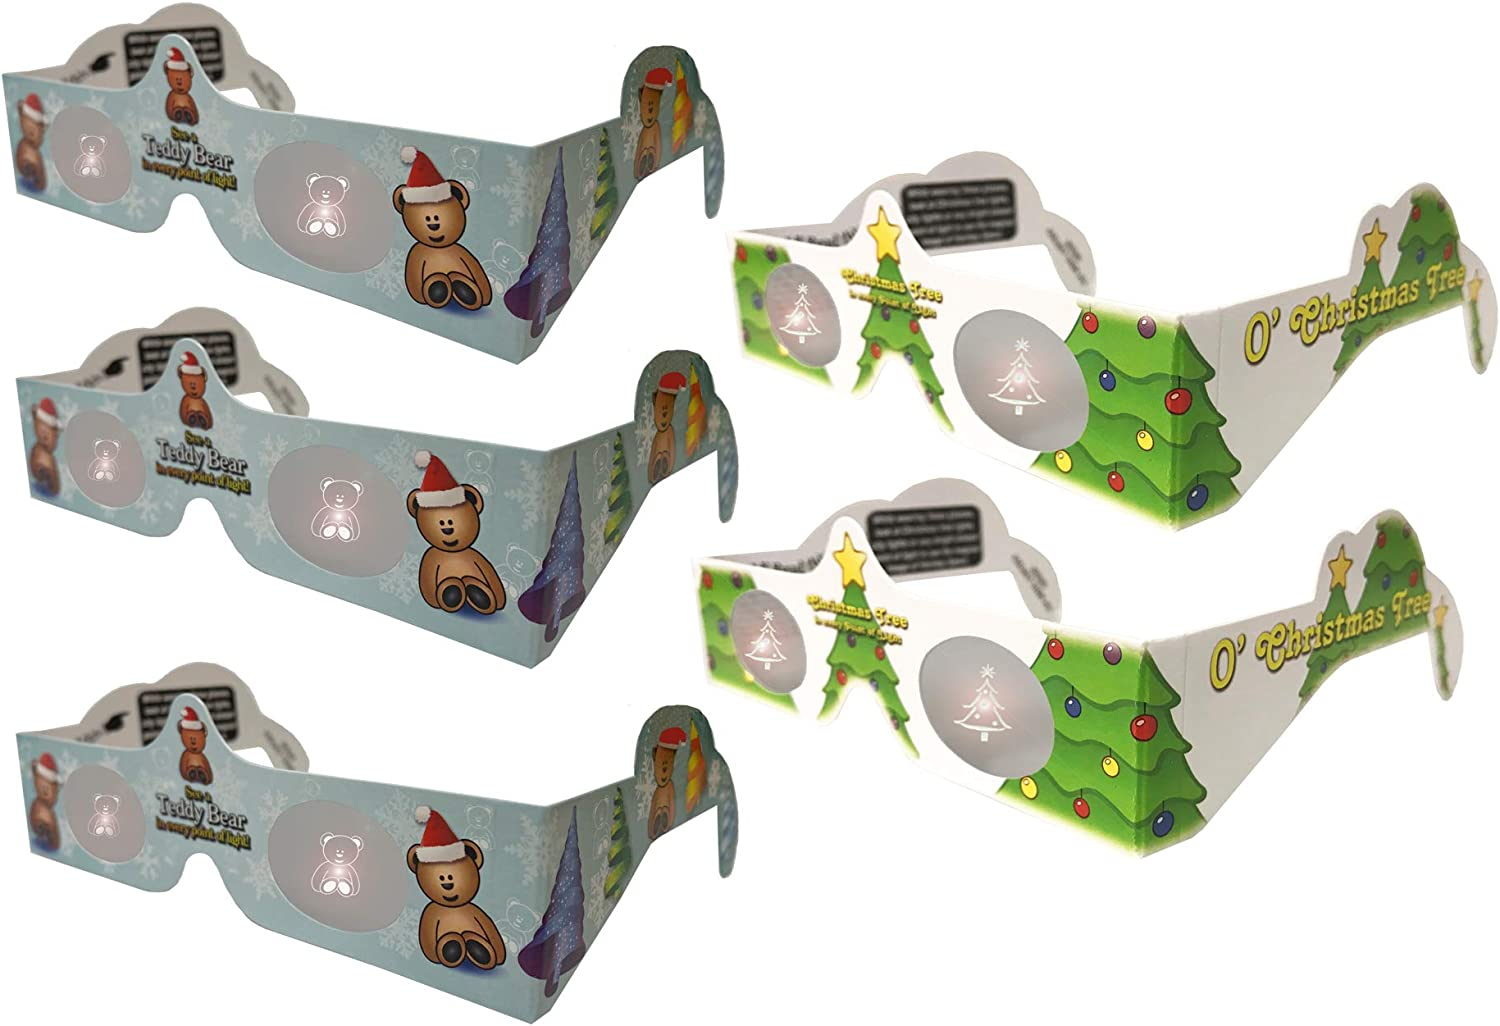 5 Pairs Glasses Teddy Bear and Tree 3D Christmas Glasses Holiday Eyes 5 Pairs Transform Christmas Lights Into Magical Images